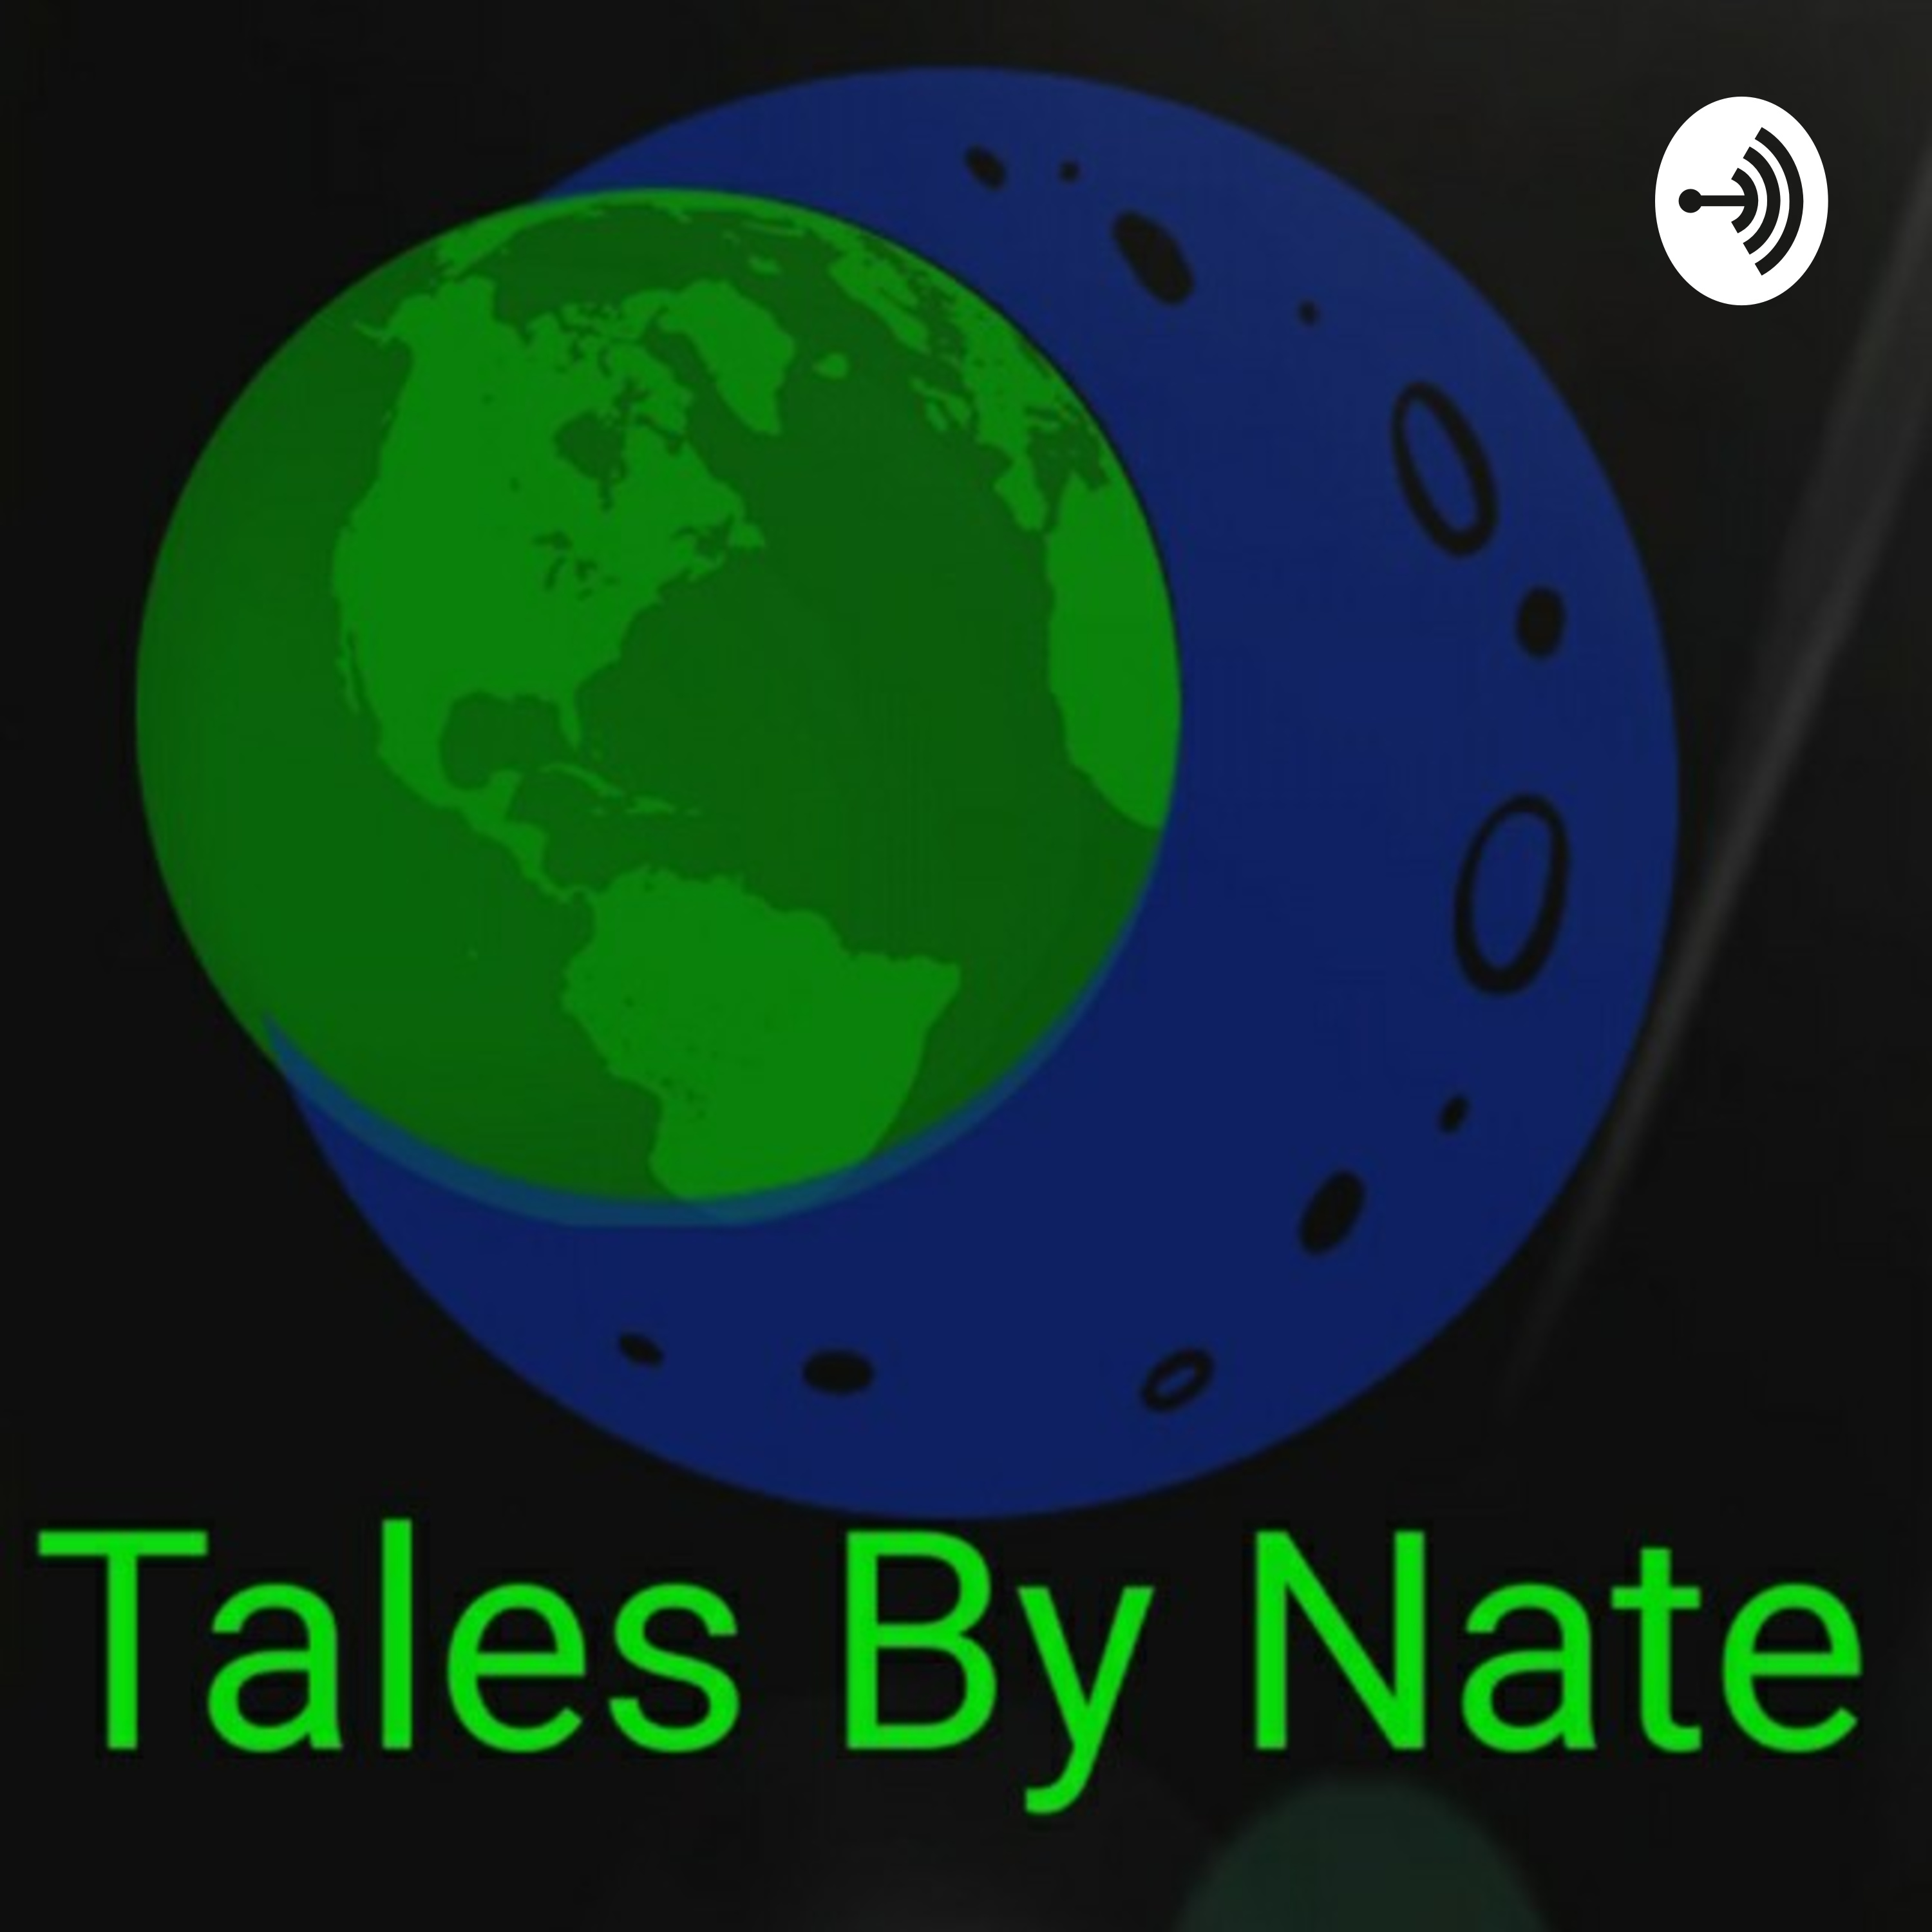 Tales By Nate